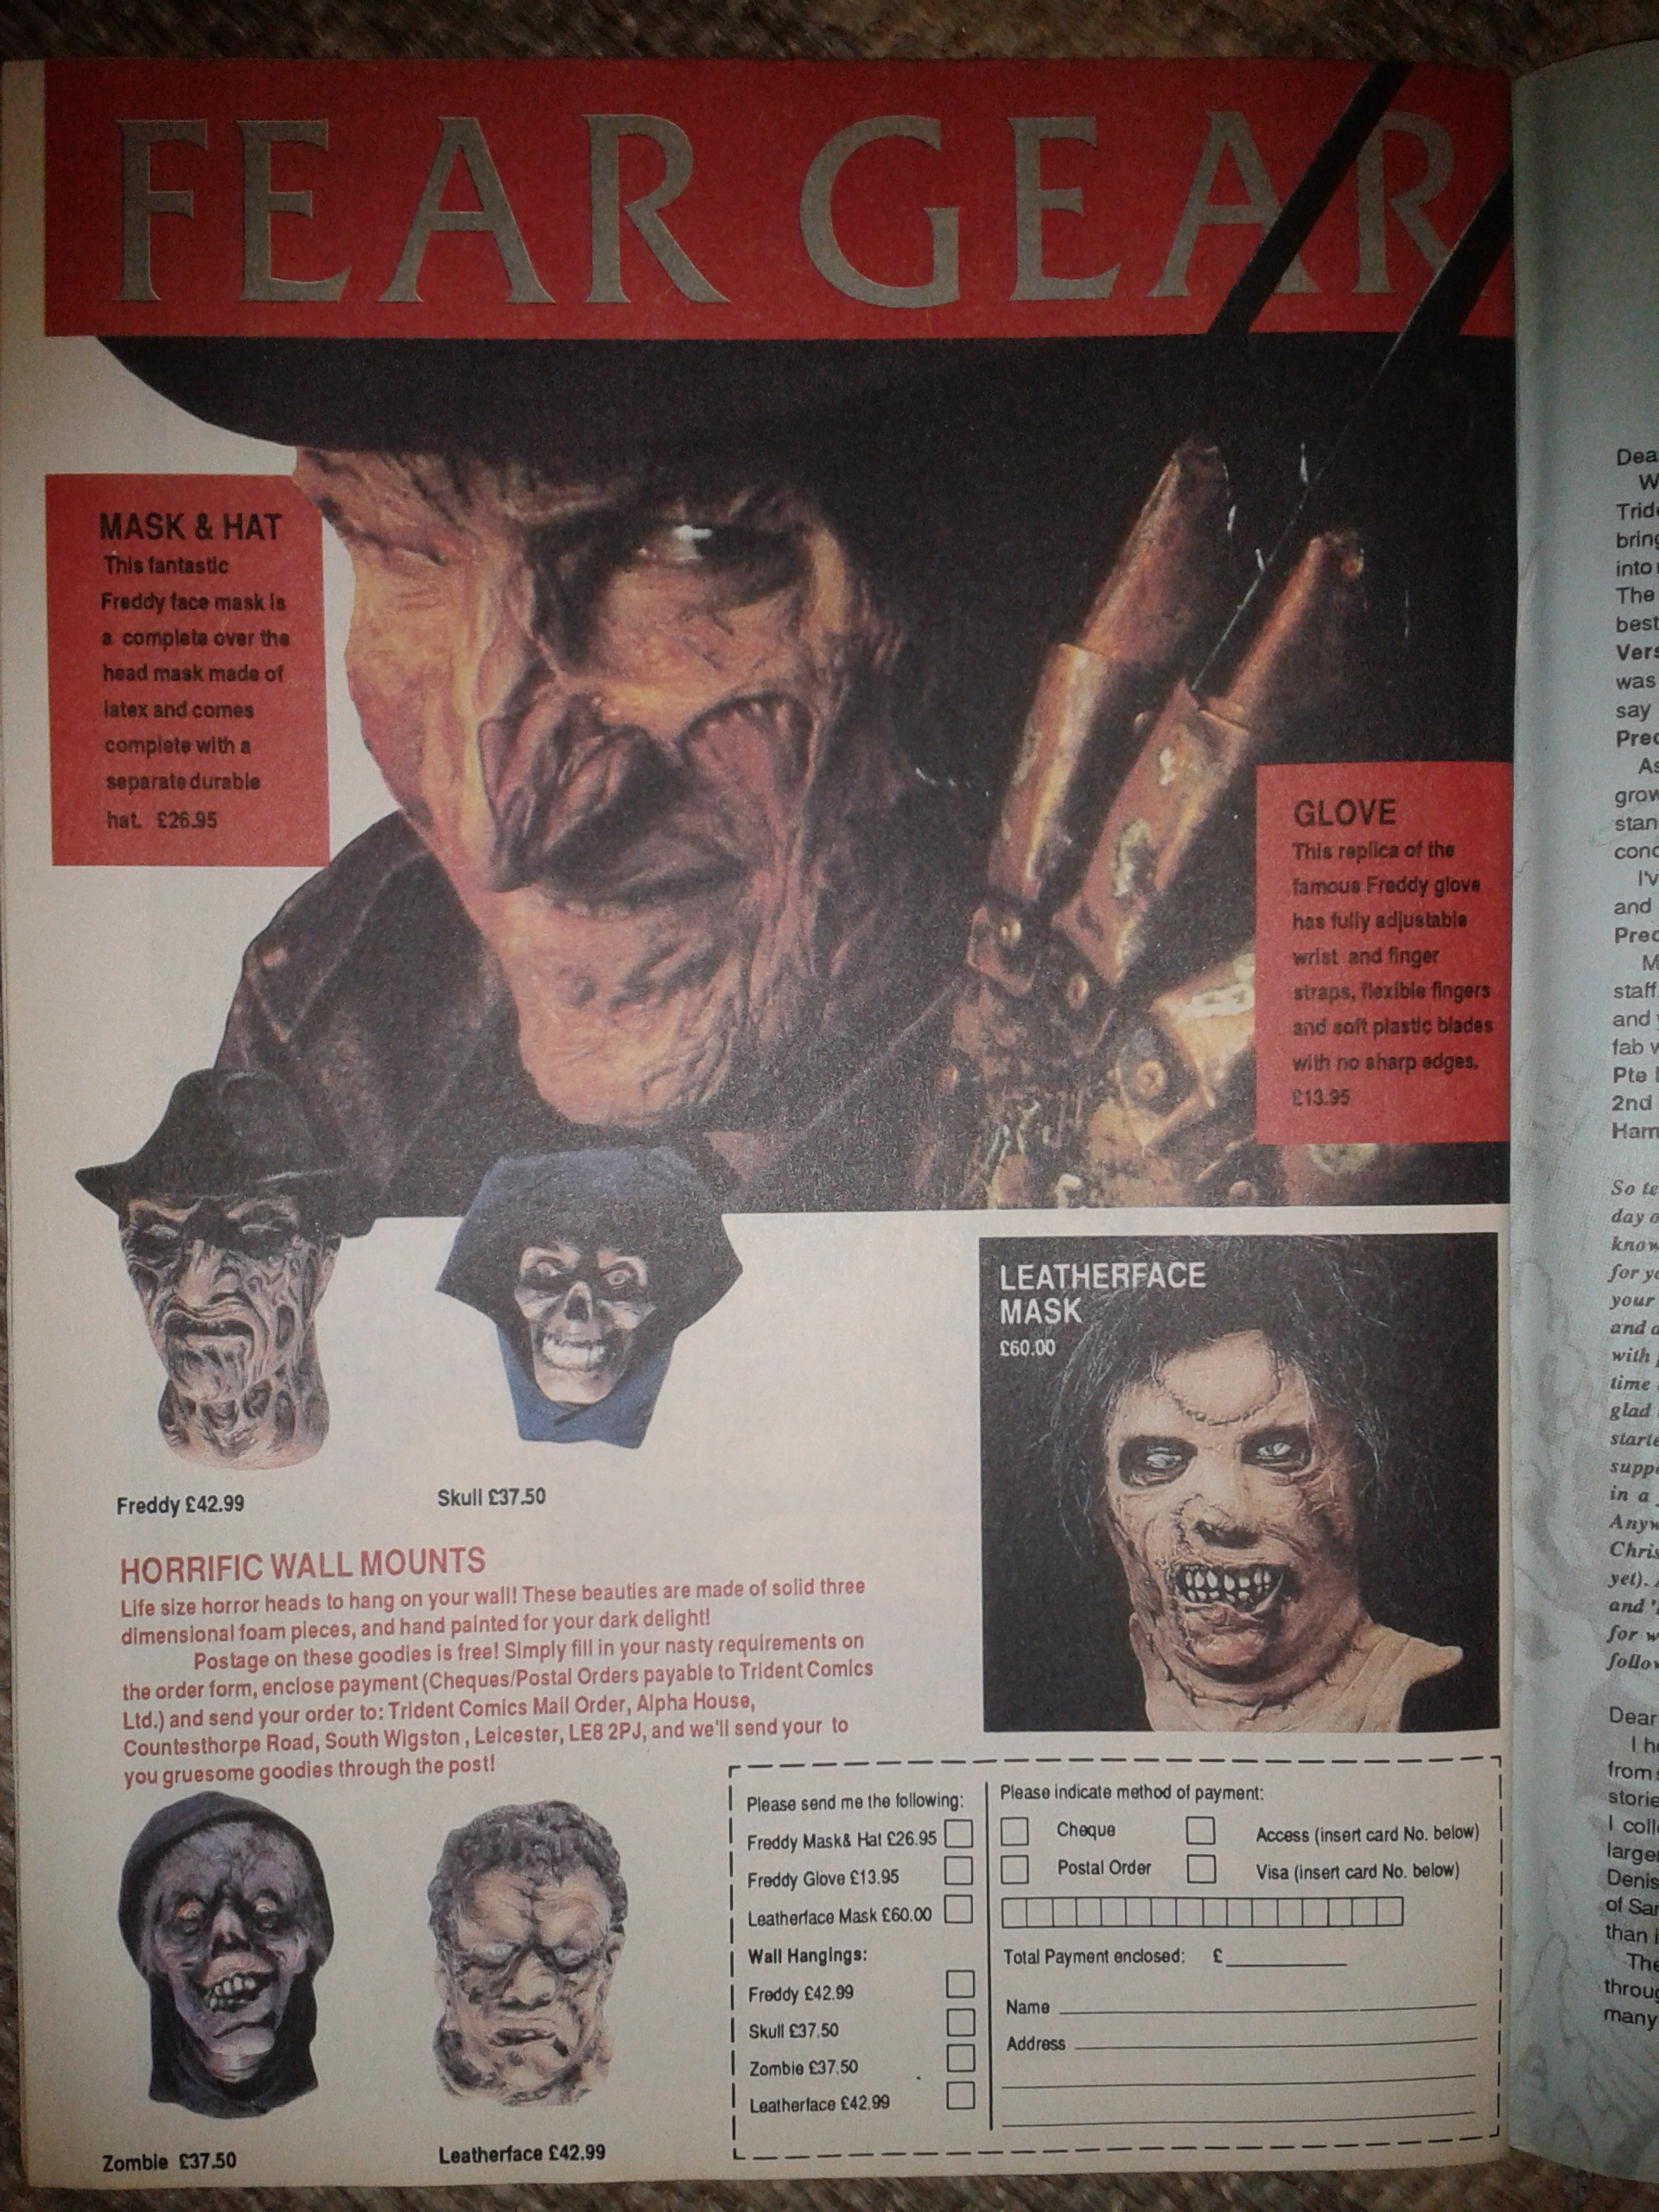 Fear Gear Advert Featuring Freddy And Leatherface - 1990s